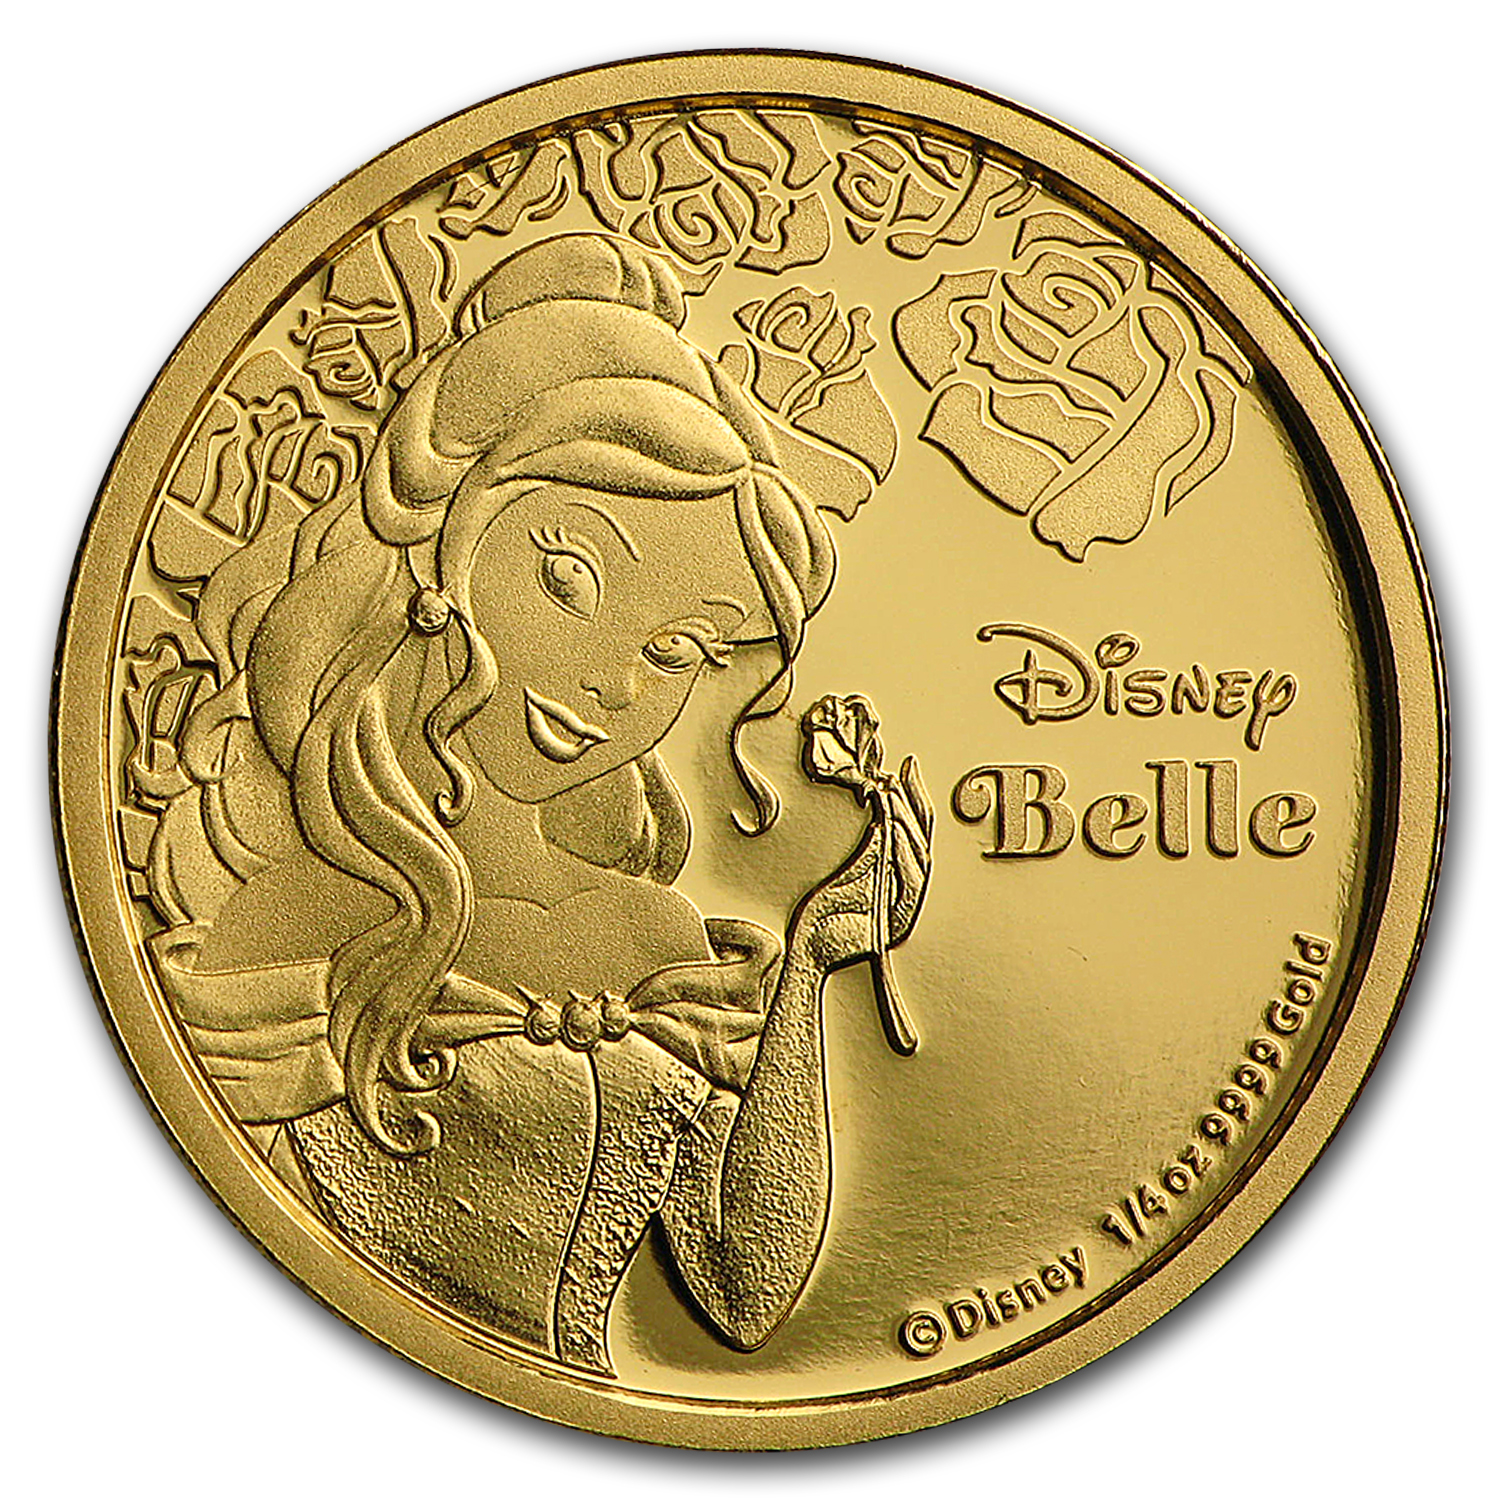 2015 Niue 1/4 oz Proof Gold $25 Disney Princess Belle